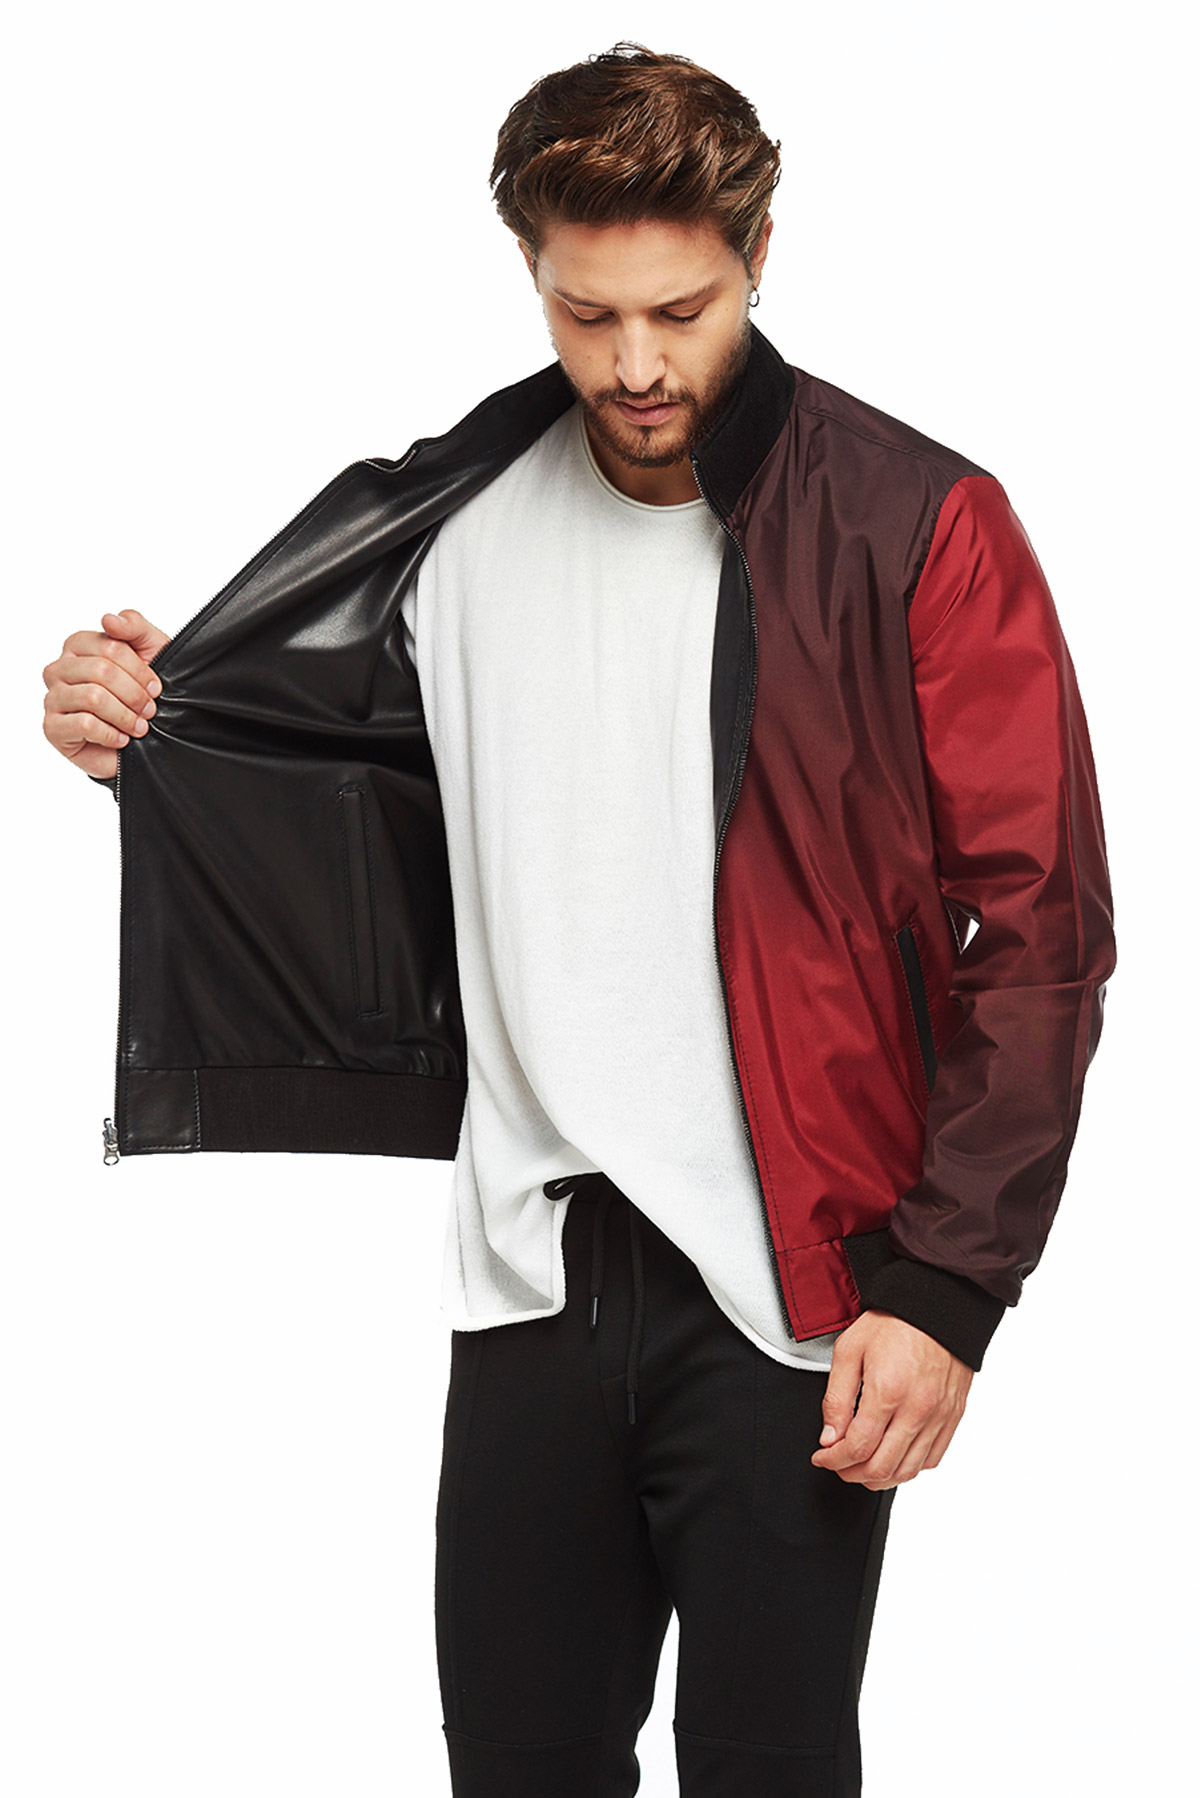 real leather jackets near me